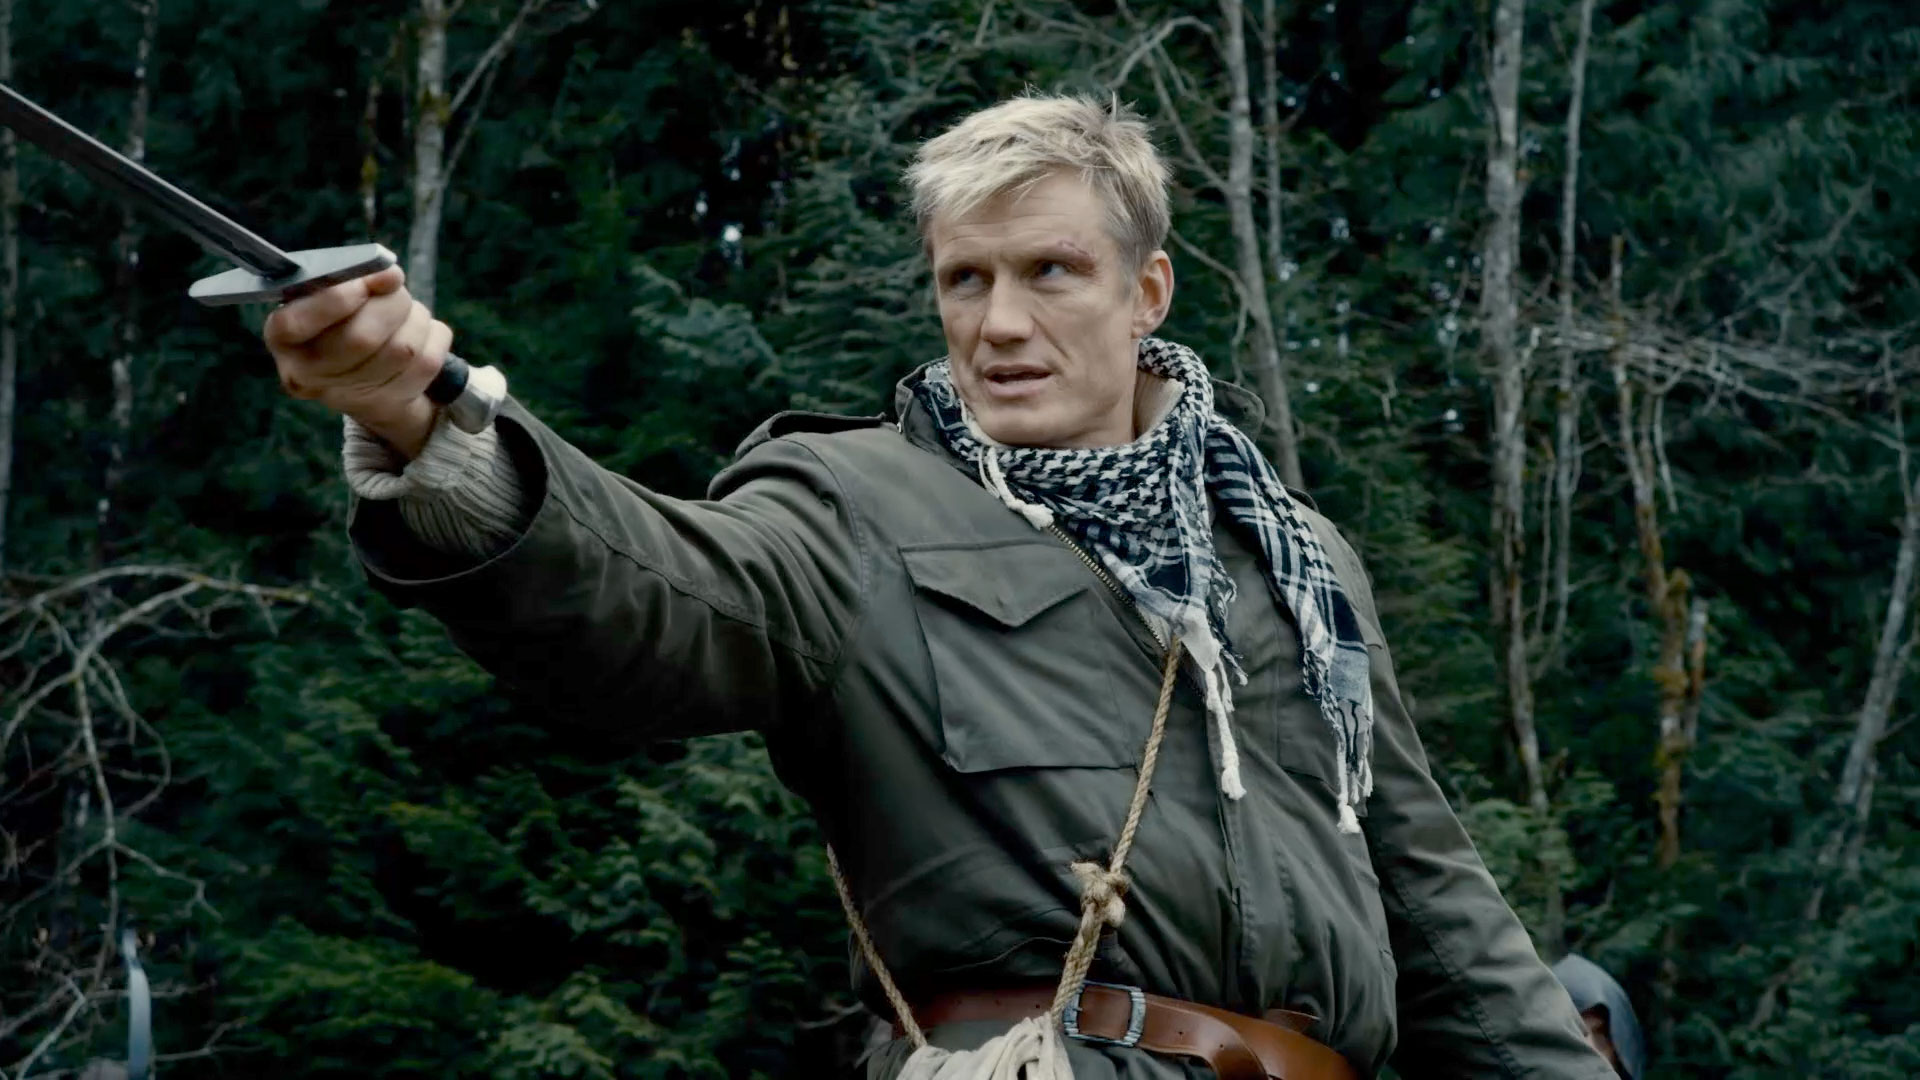 Dolph Lundgren as the soldier Granger displaced into another world in In the Name of the King: Two Worlds (2011)